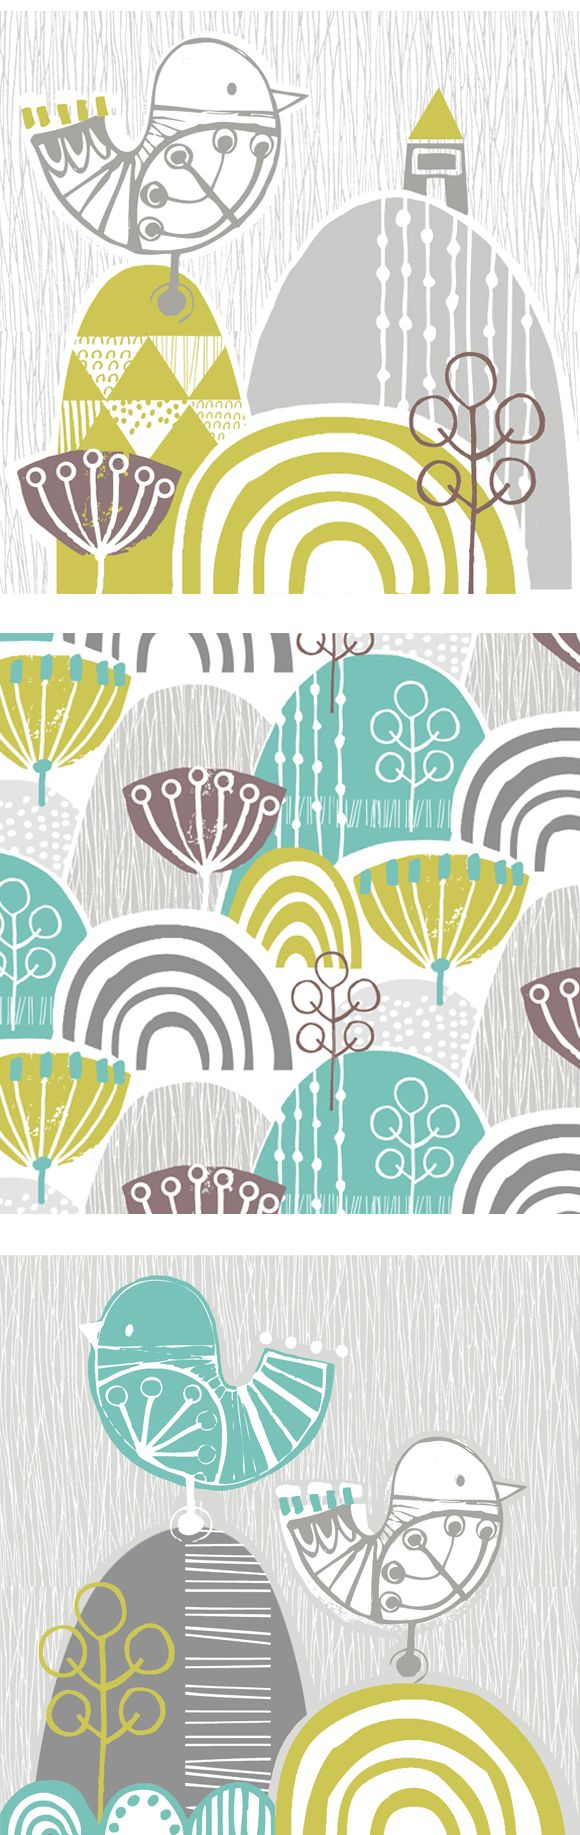 wendy kendall designs – freelance surface pattern designer » bird graphic